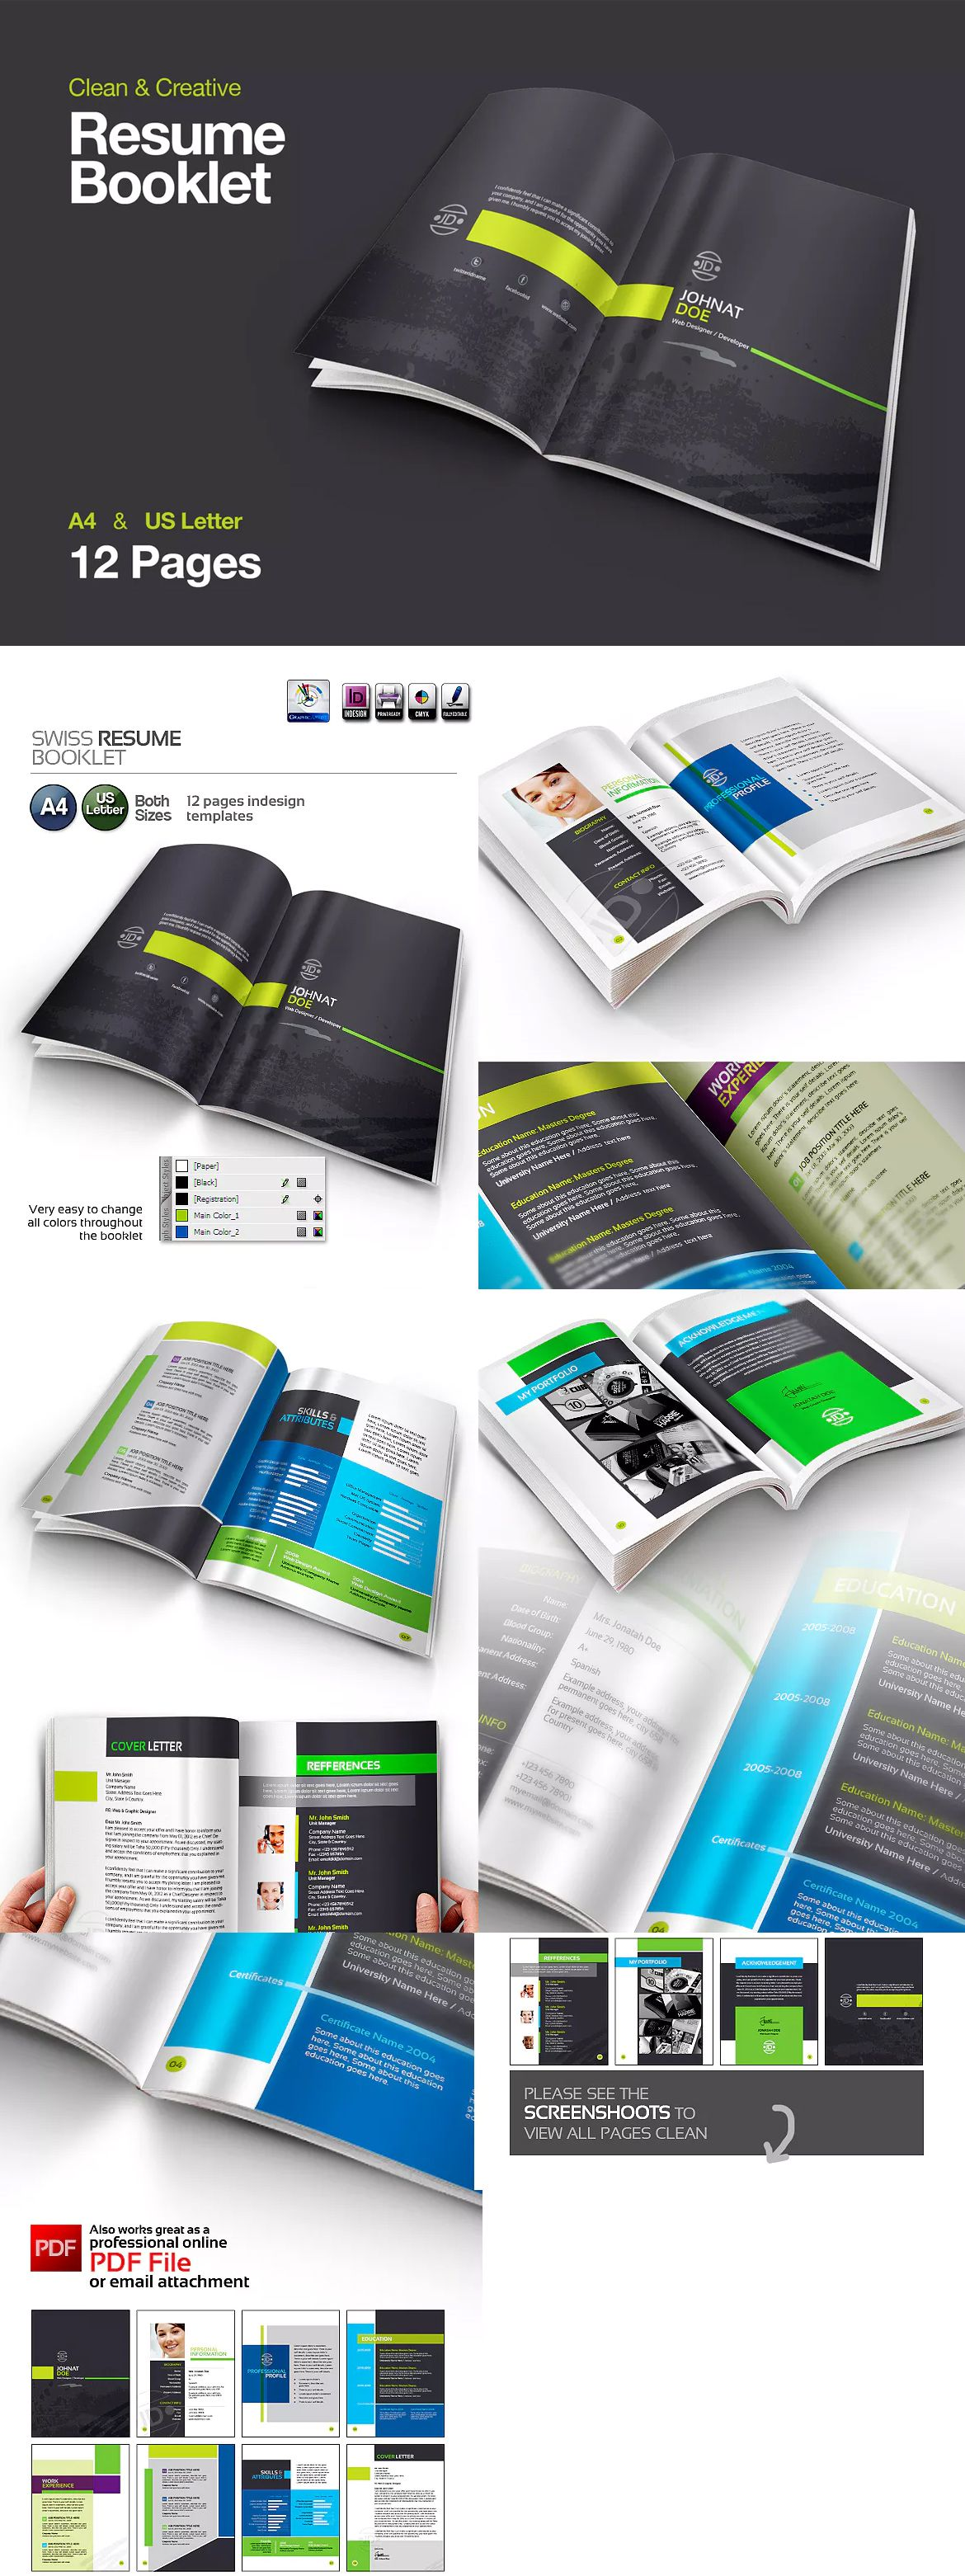 Swiss Resume Booklet Template Indesign Indd A And Us Letter Size